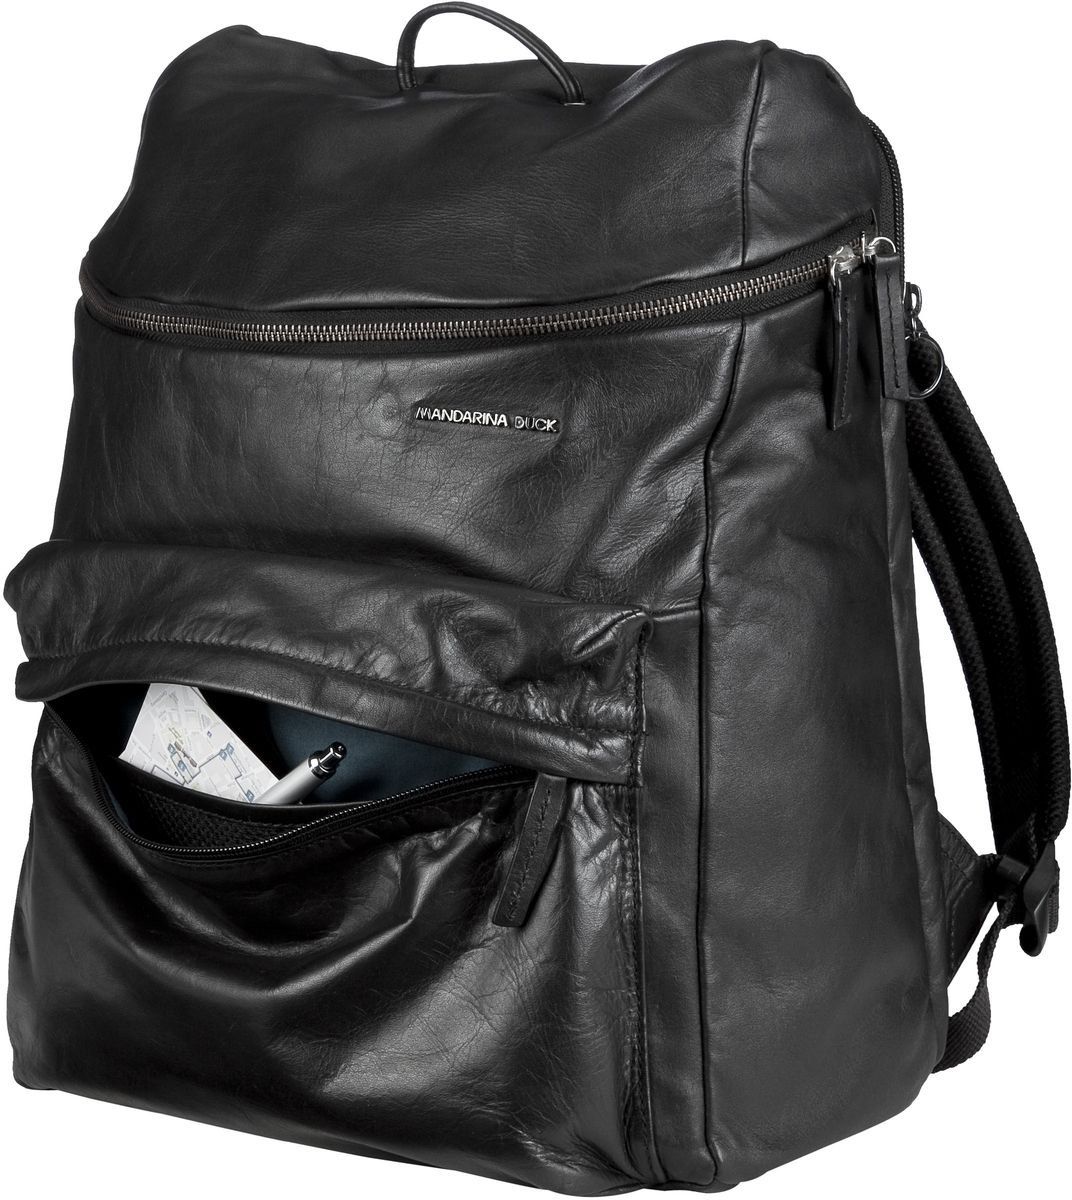 balo-hang-hieu-mandarina-duck-duplex-backpack-7